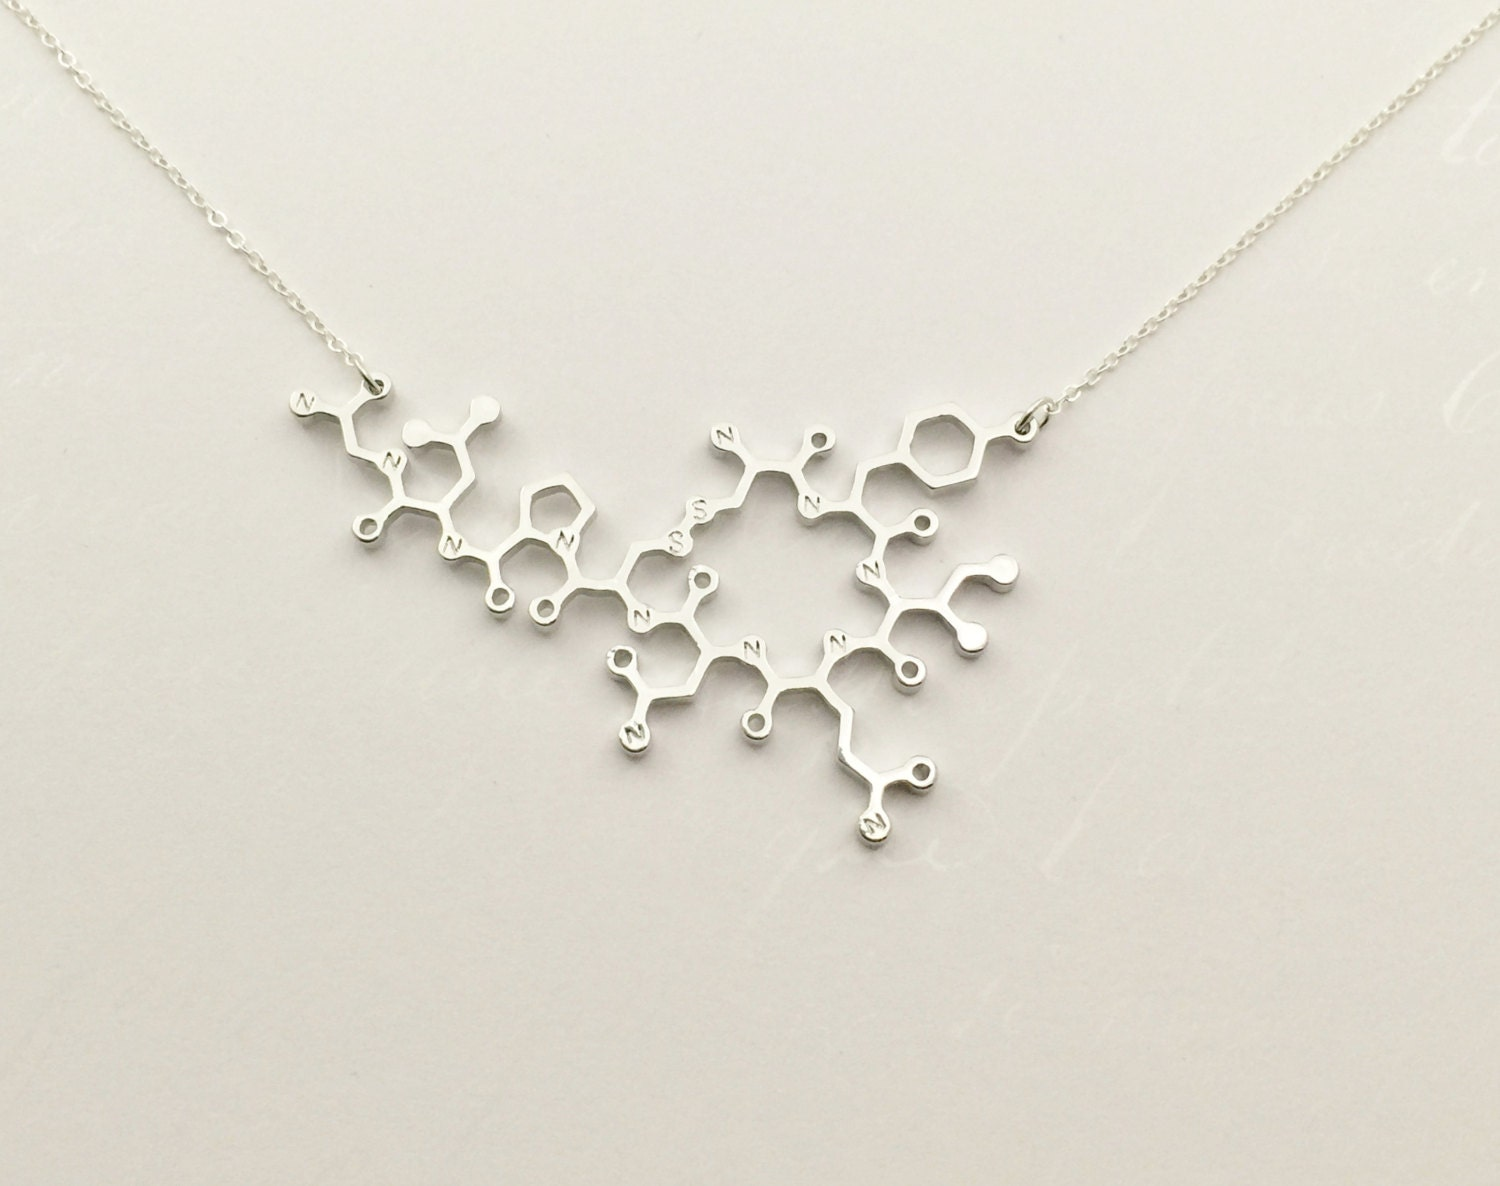 oxytocin molecular necklace gift for doctor obgyn by